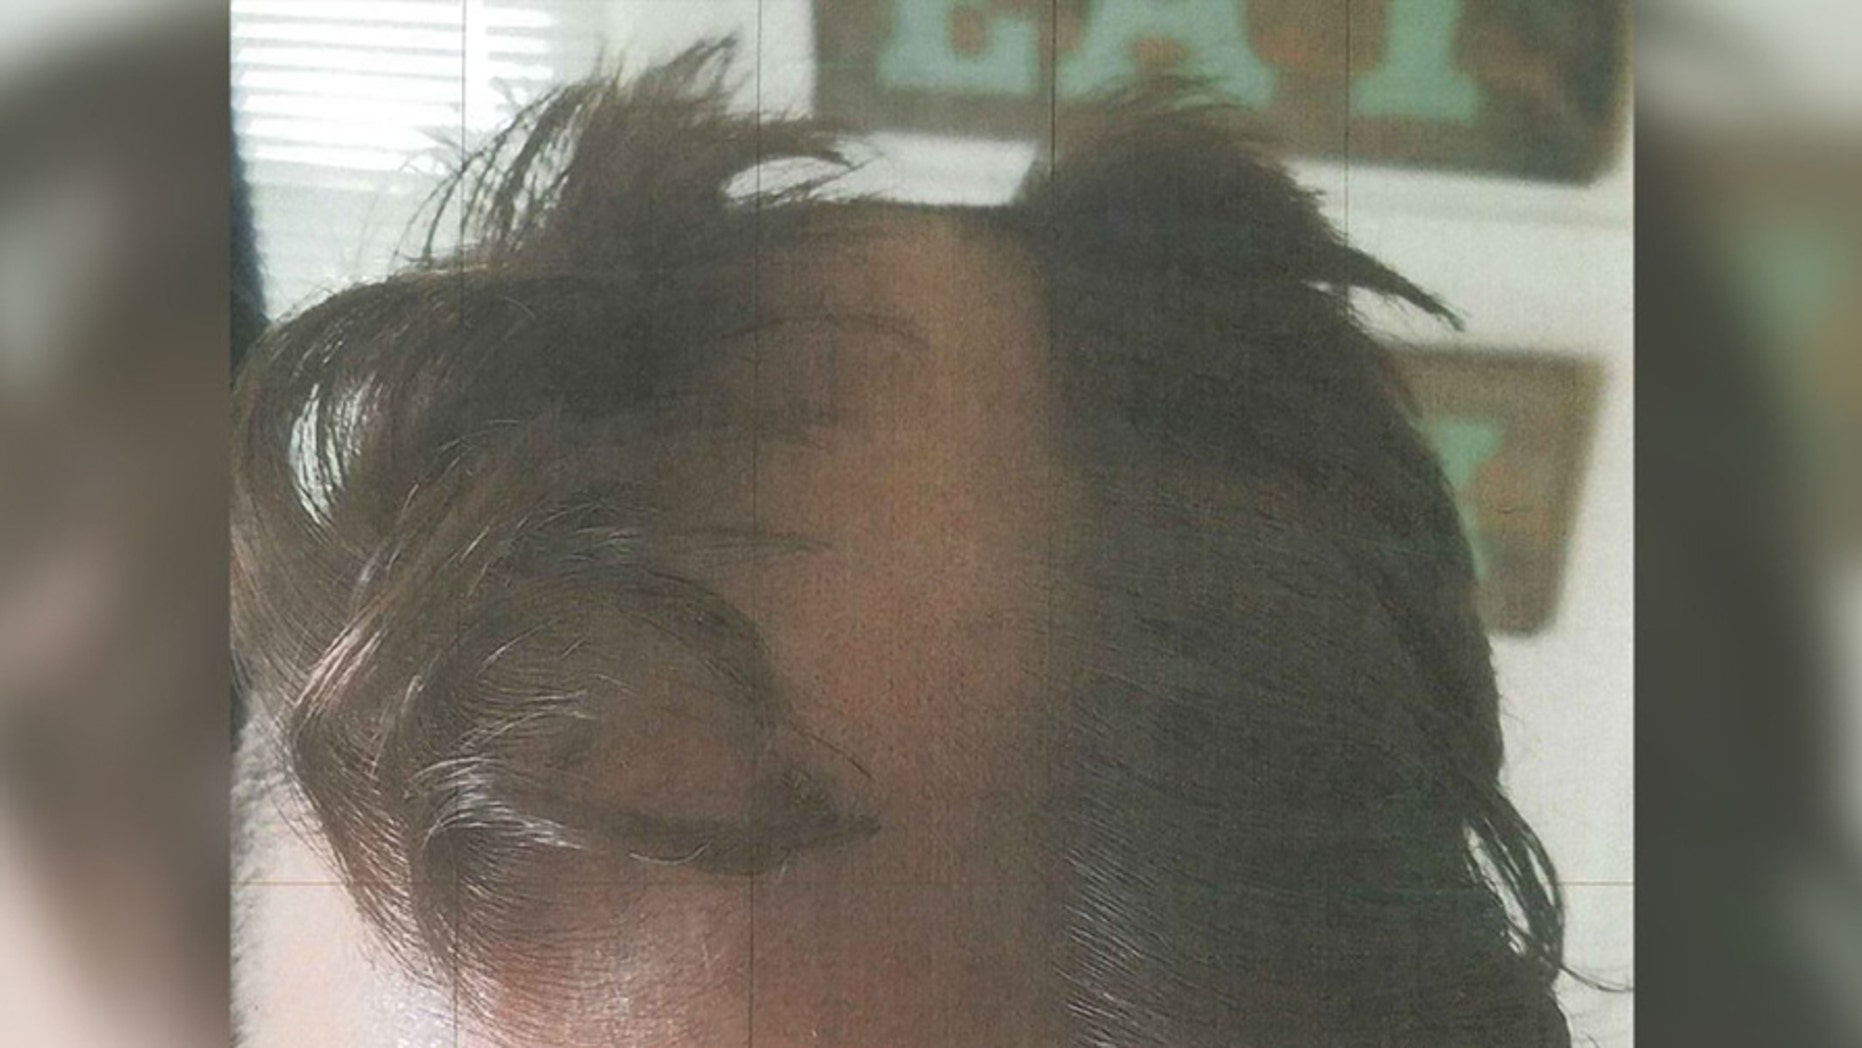 This bad haircut and a wounded ear have left a Wisconsin hairstylist under arrest, authorities said. (Madison Police Department)